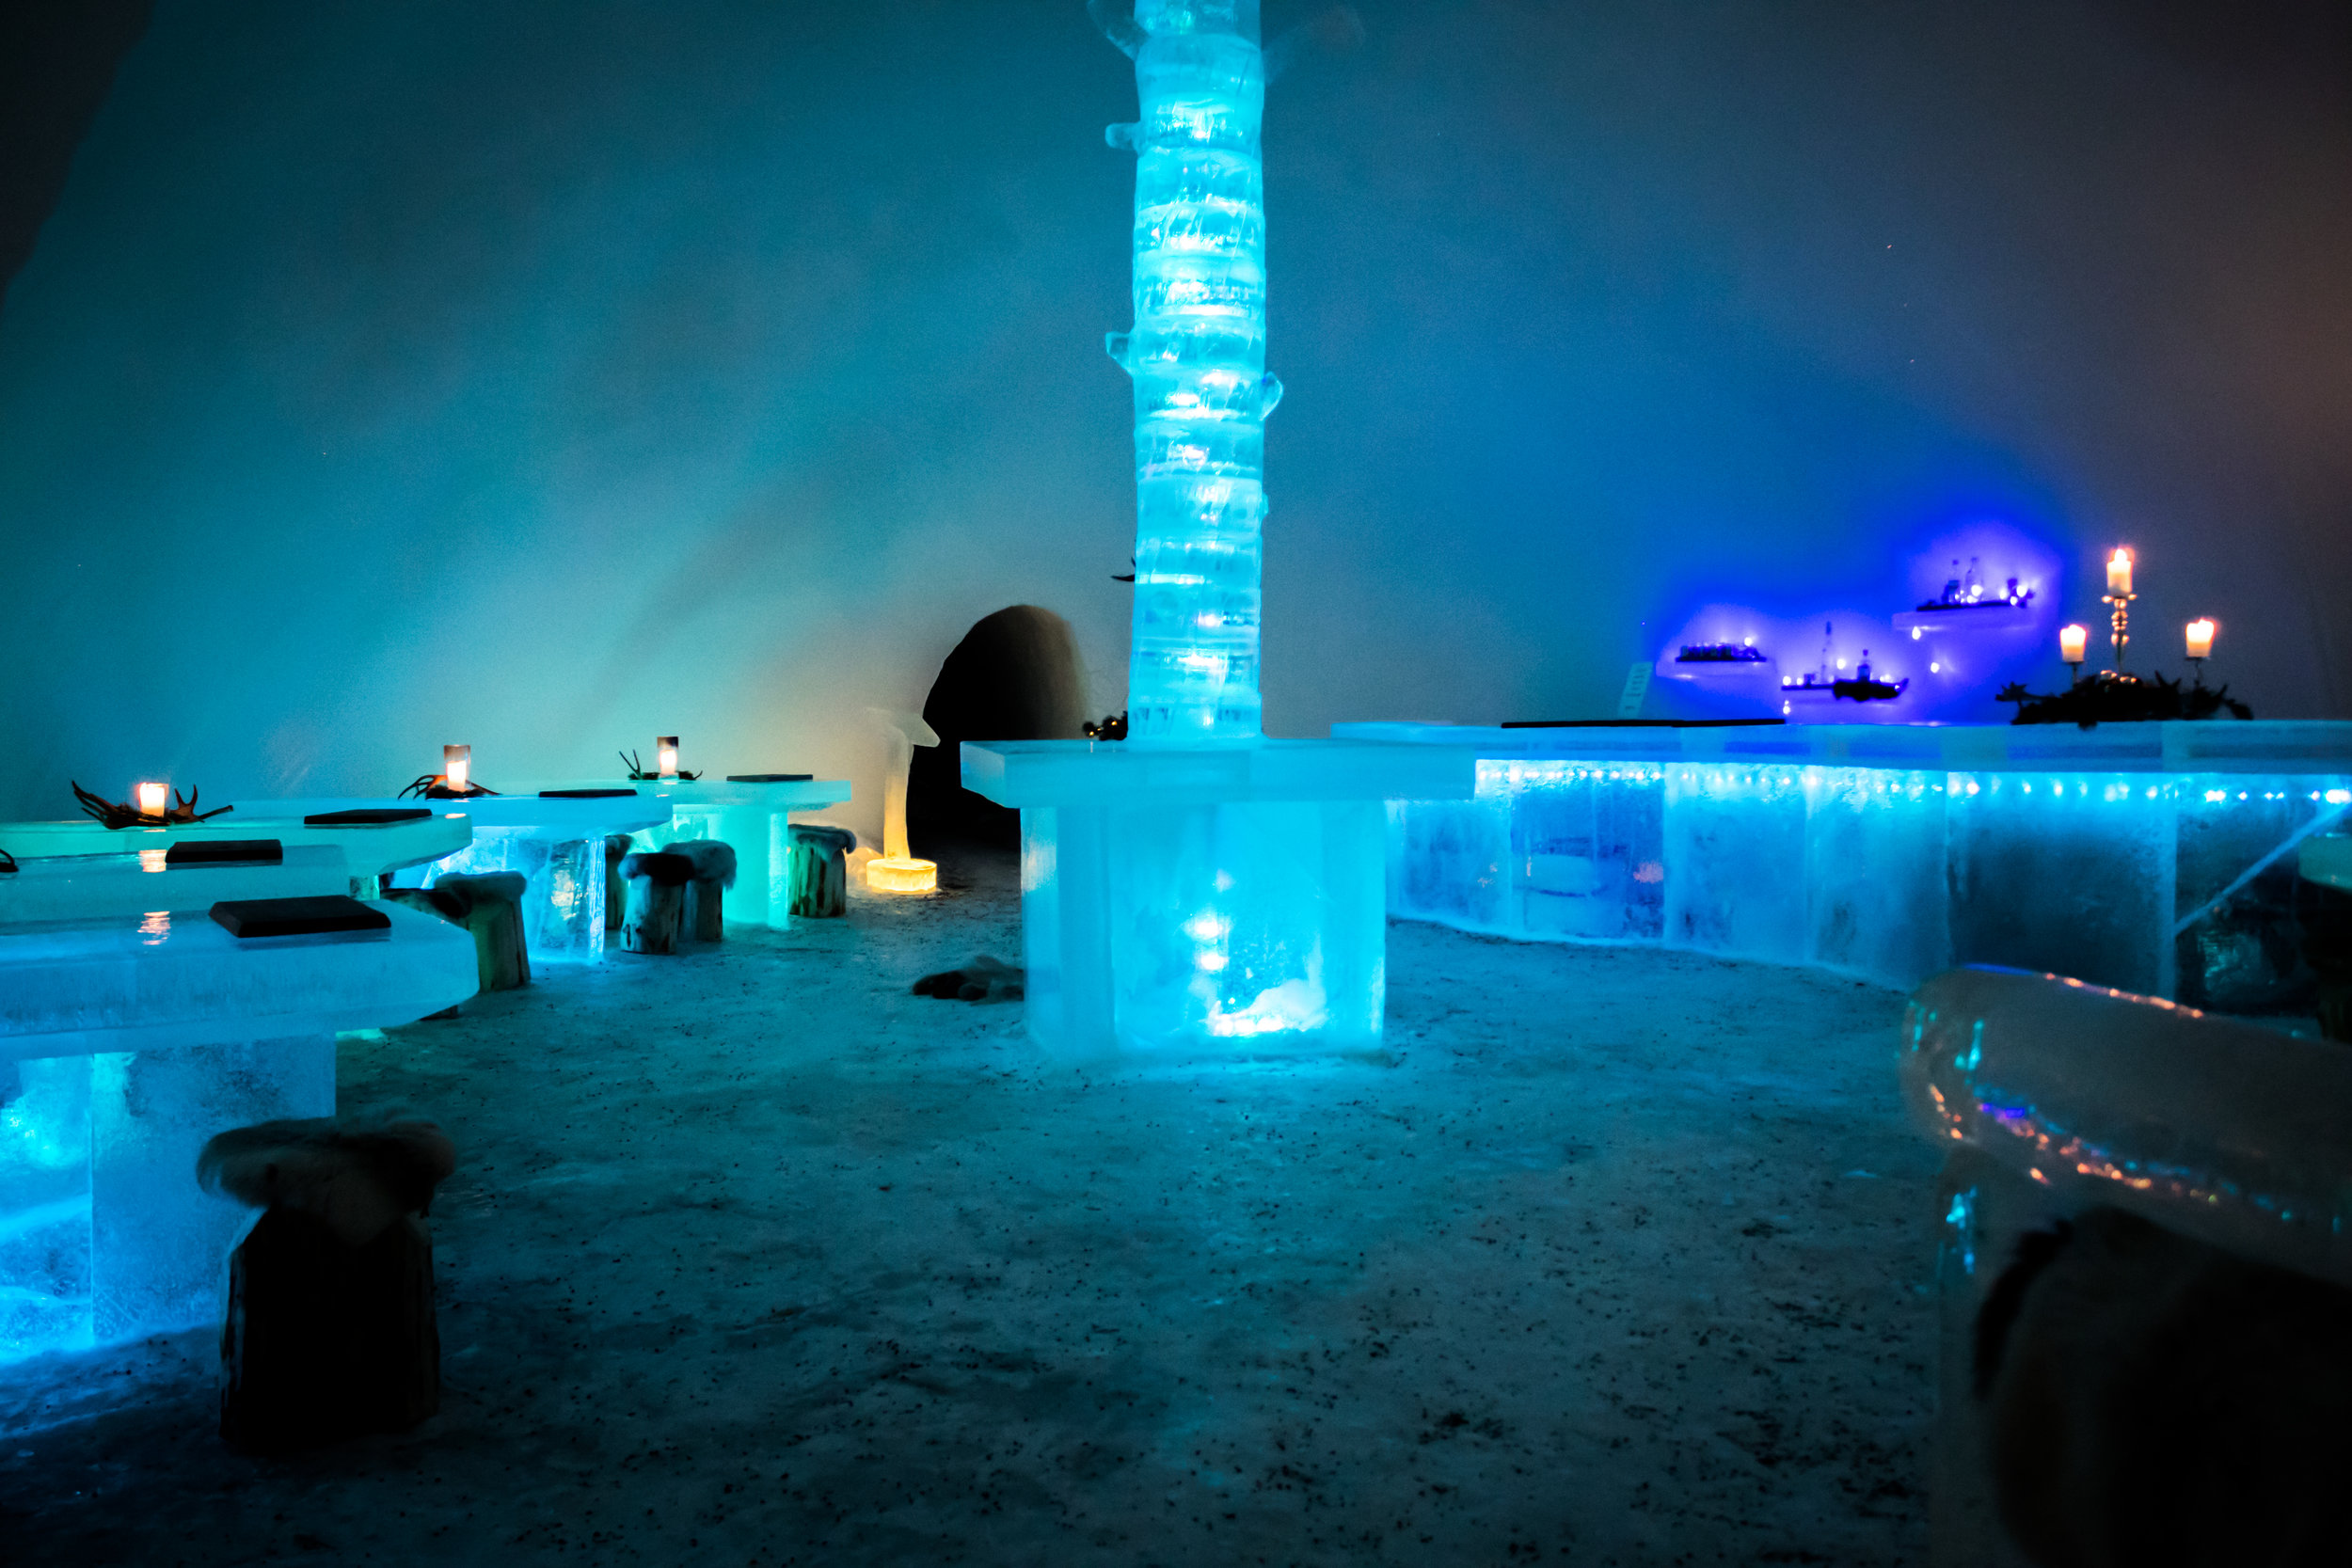 Northern Lights Village - igloo hotel Saariselka Finland, Lapland. Best places to stay in Lapland Finland  ice restaurant ice bar tour things to do in Lapland Finland